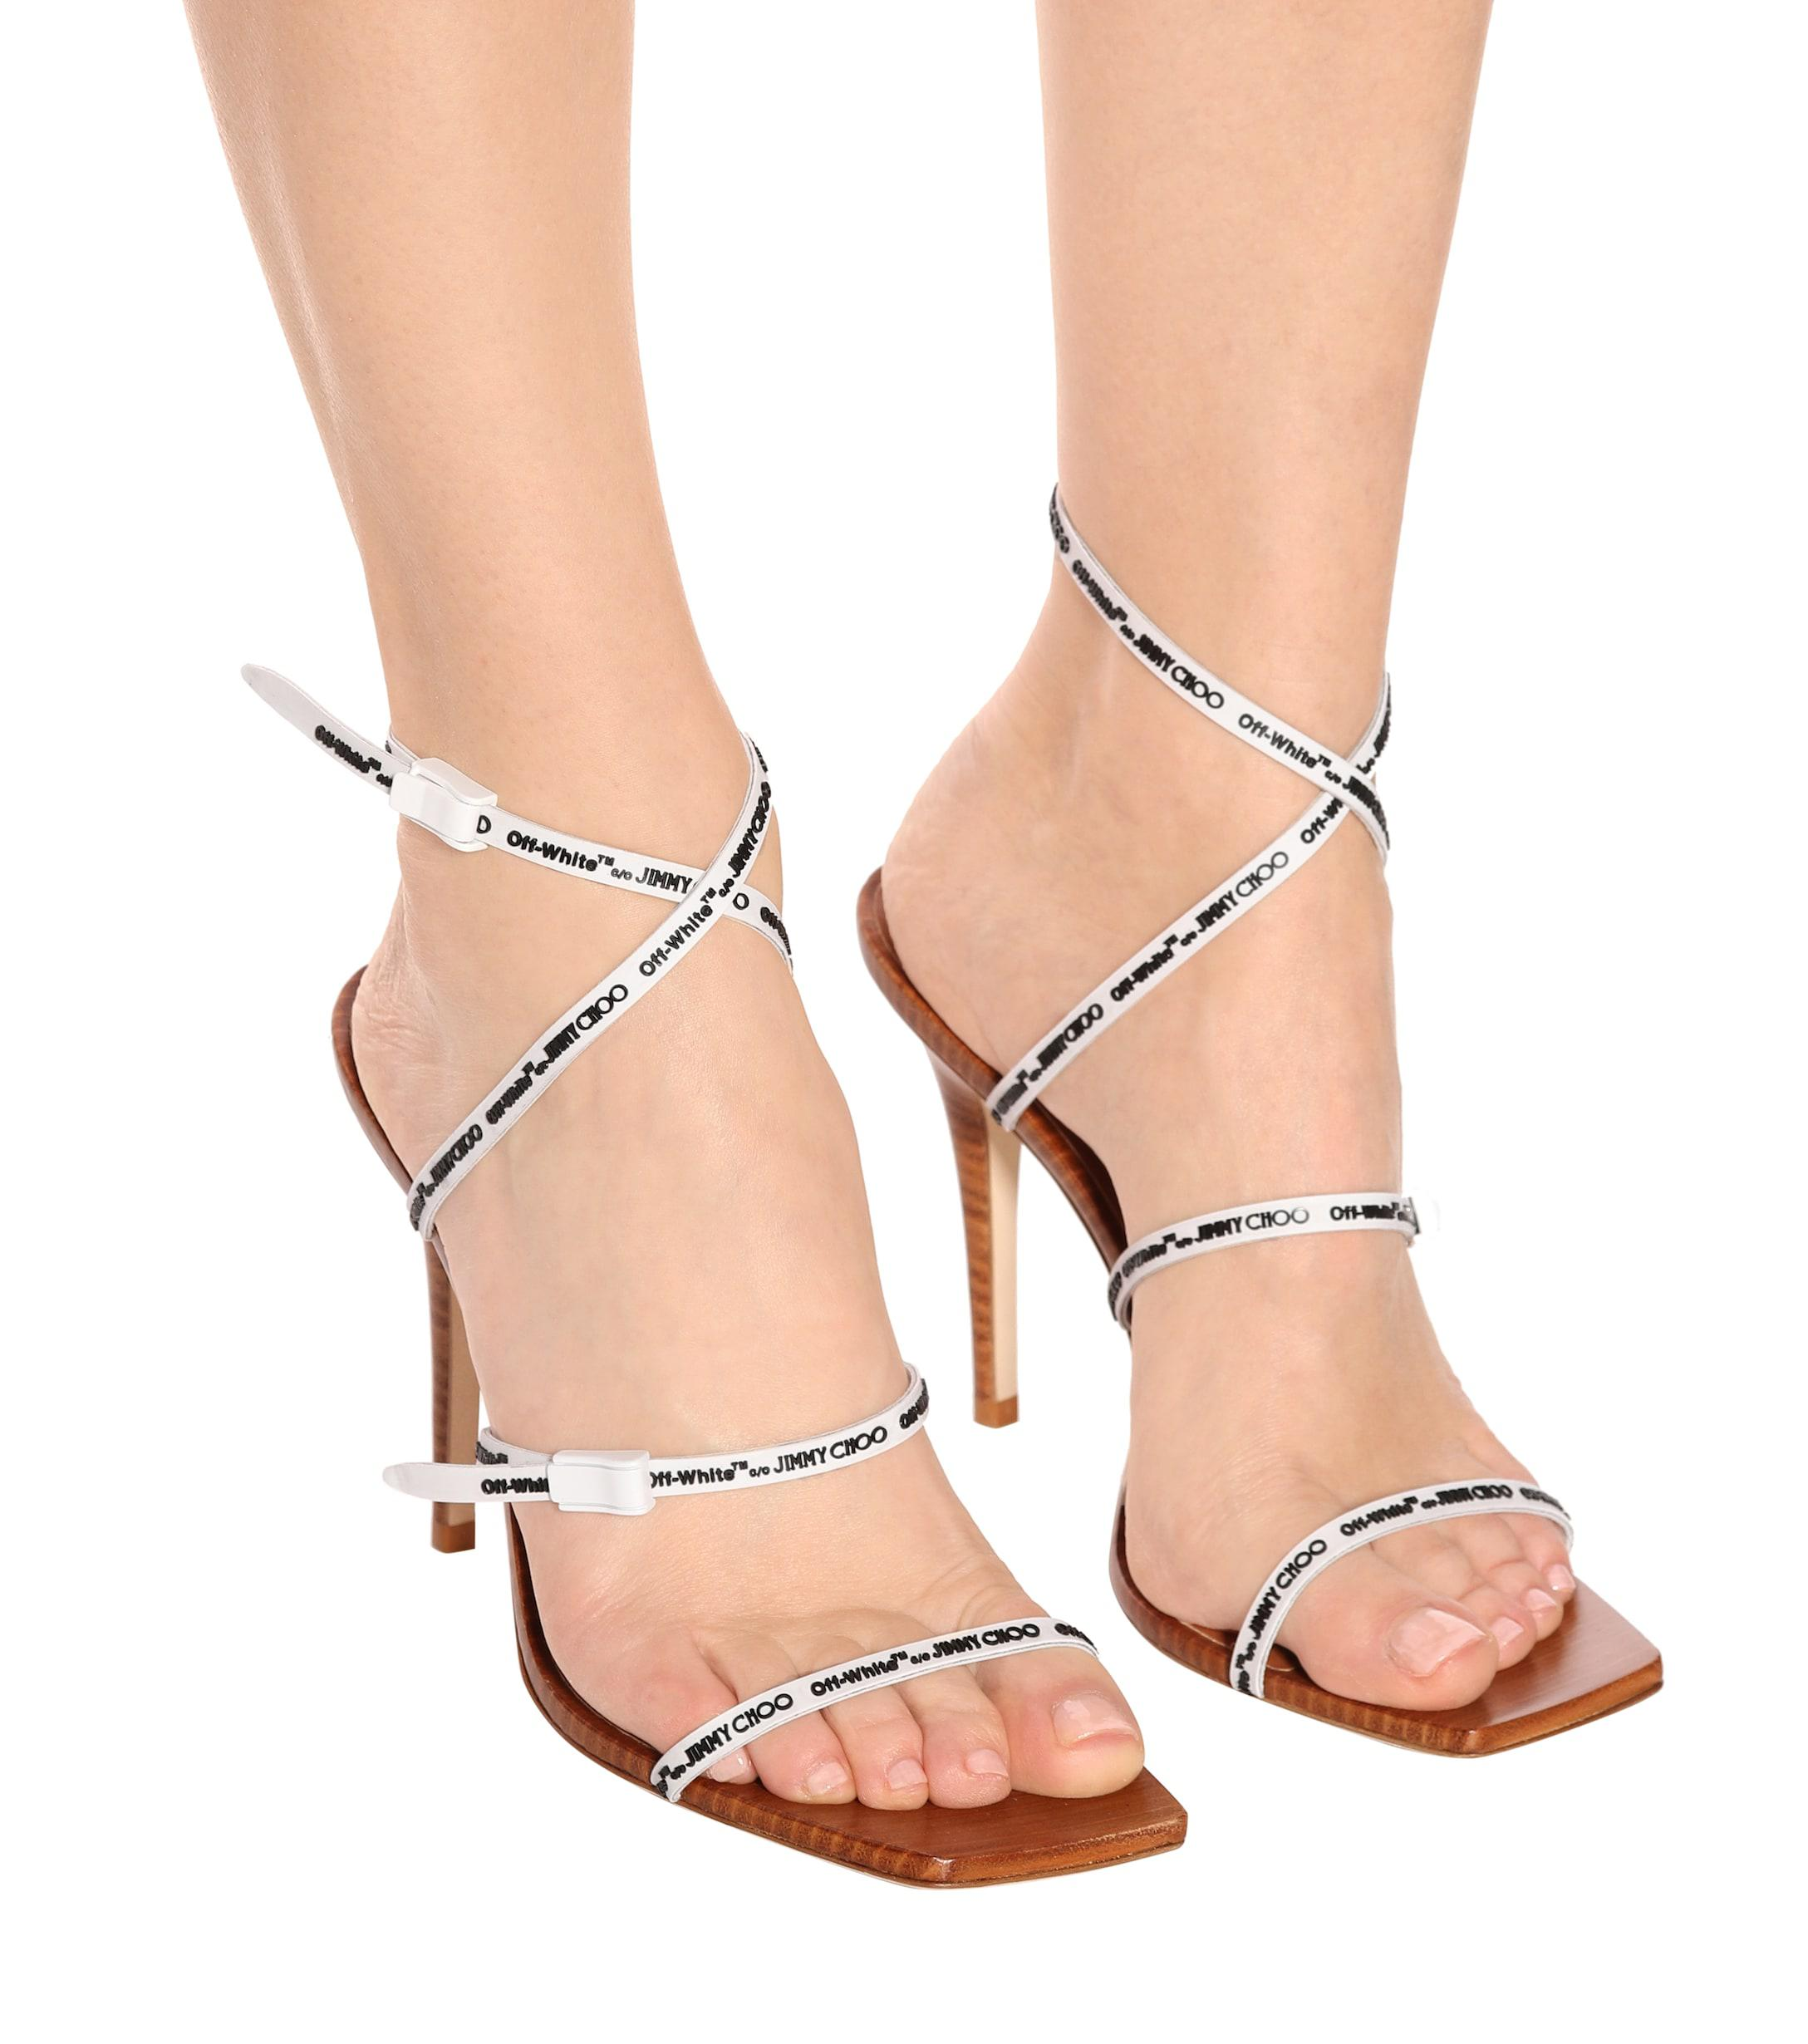 61fd481fc66 Lyst - Jimmy Choo X Off-white Jane 100 Sandals in White